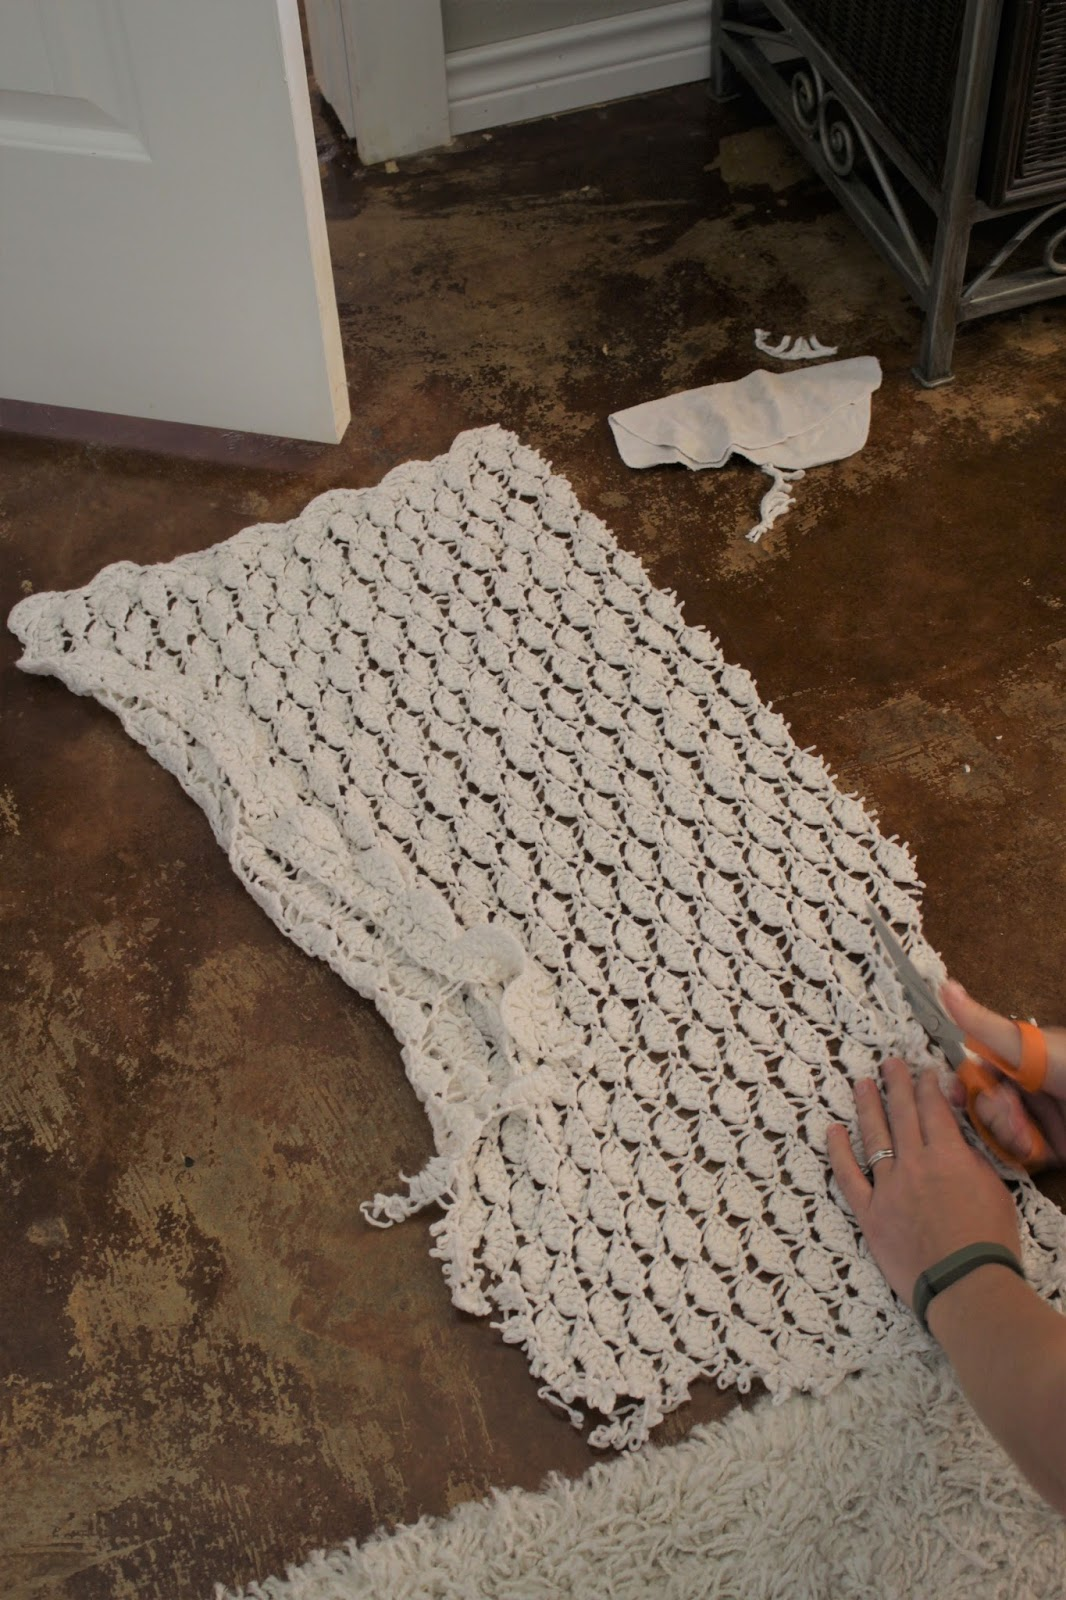 DIY Crocheted blanket wall hanging. Supplies: blanket, stick and scissors. So easy!